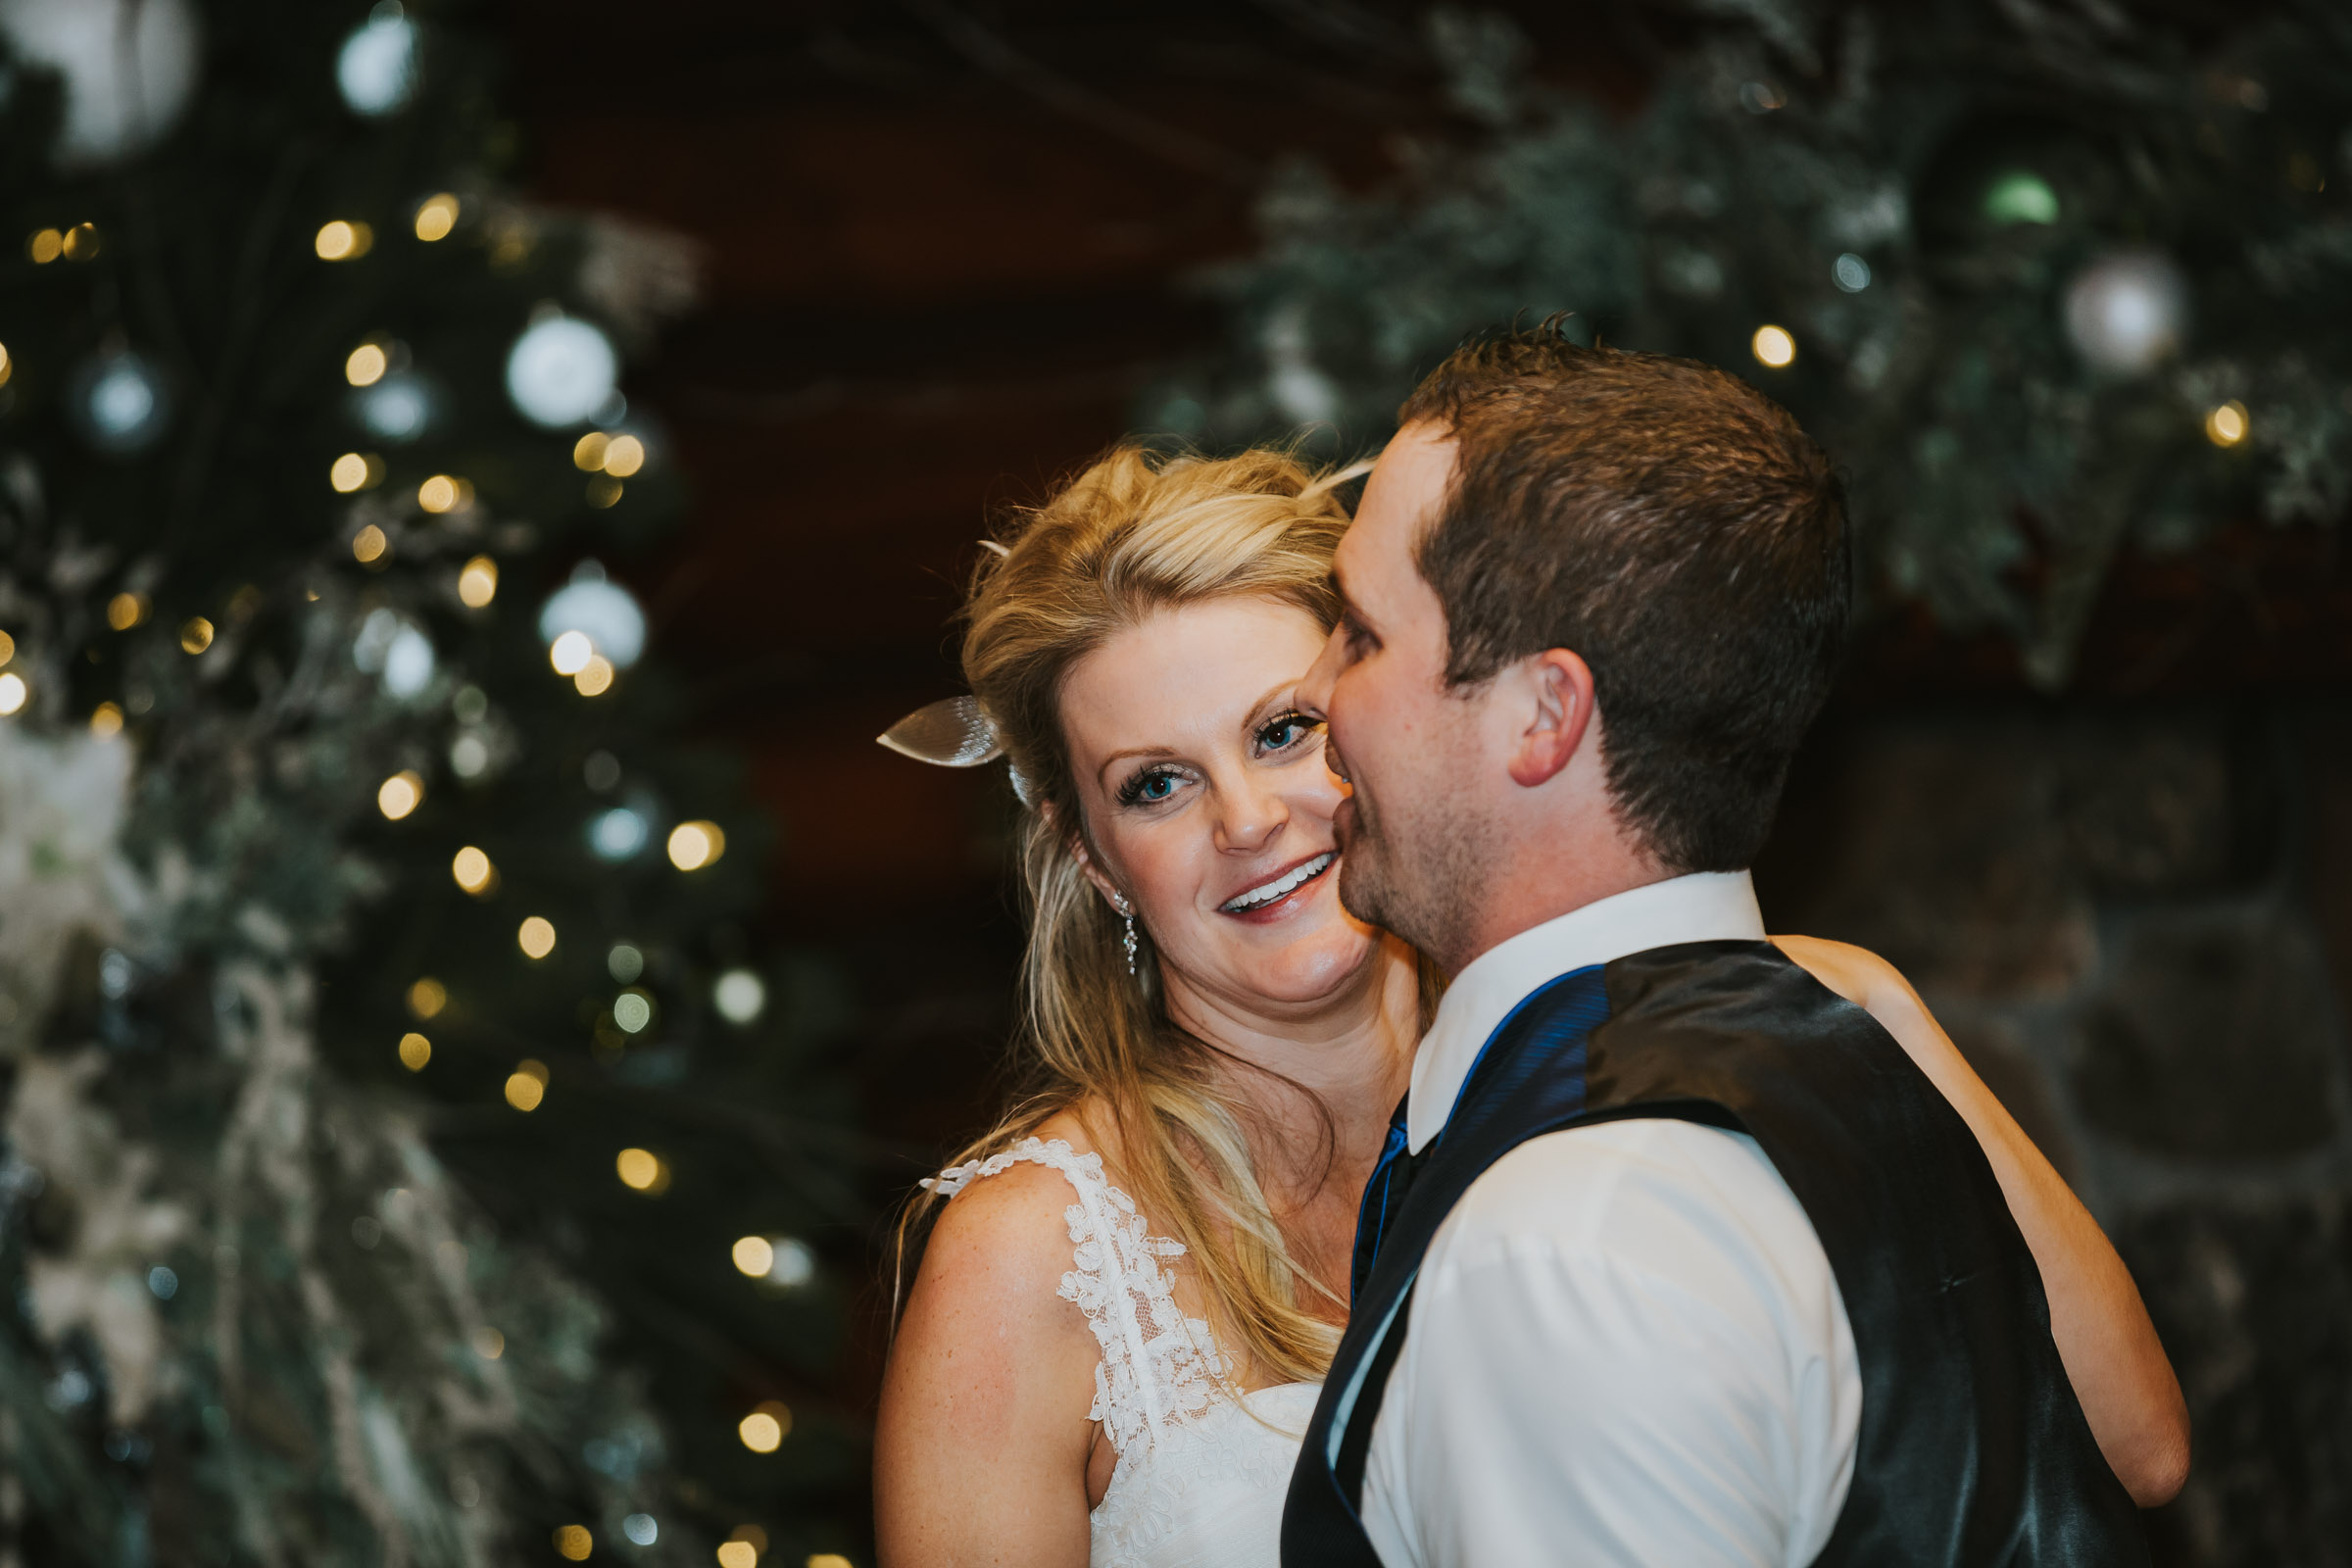 Schrumannwedding__MGL6193_dec102016.jpg